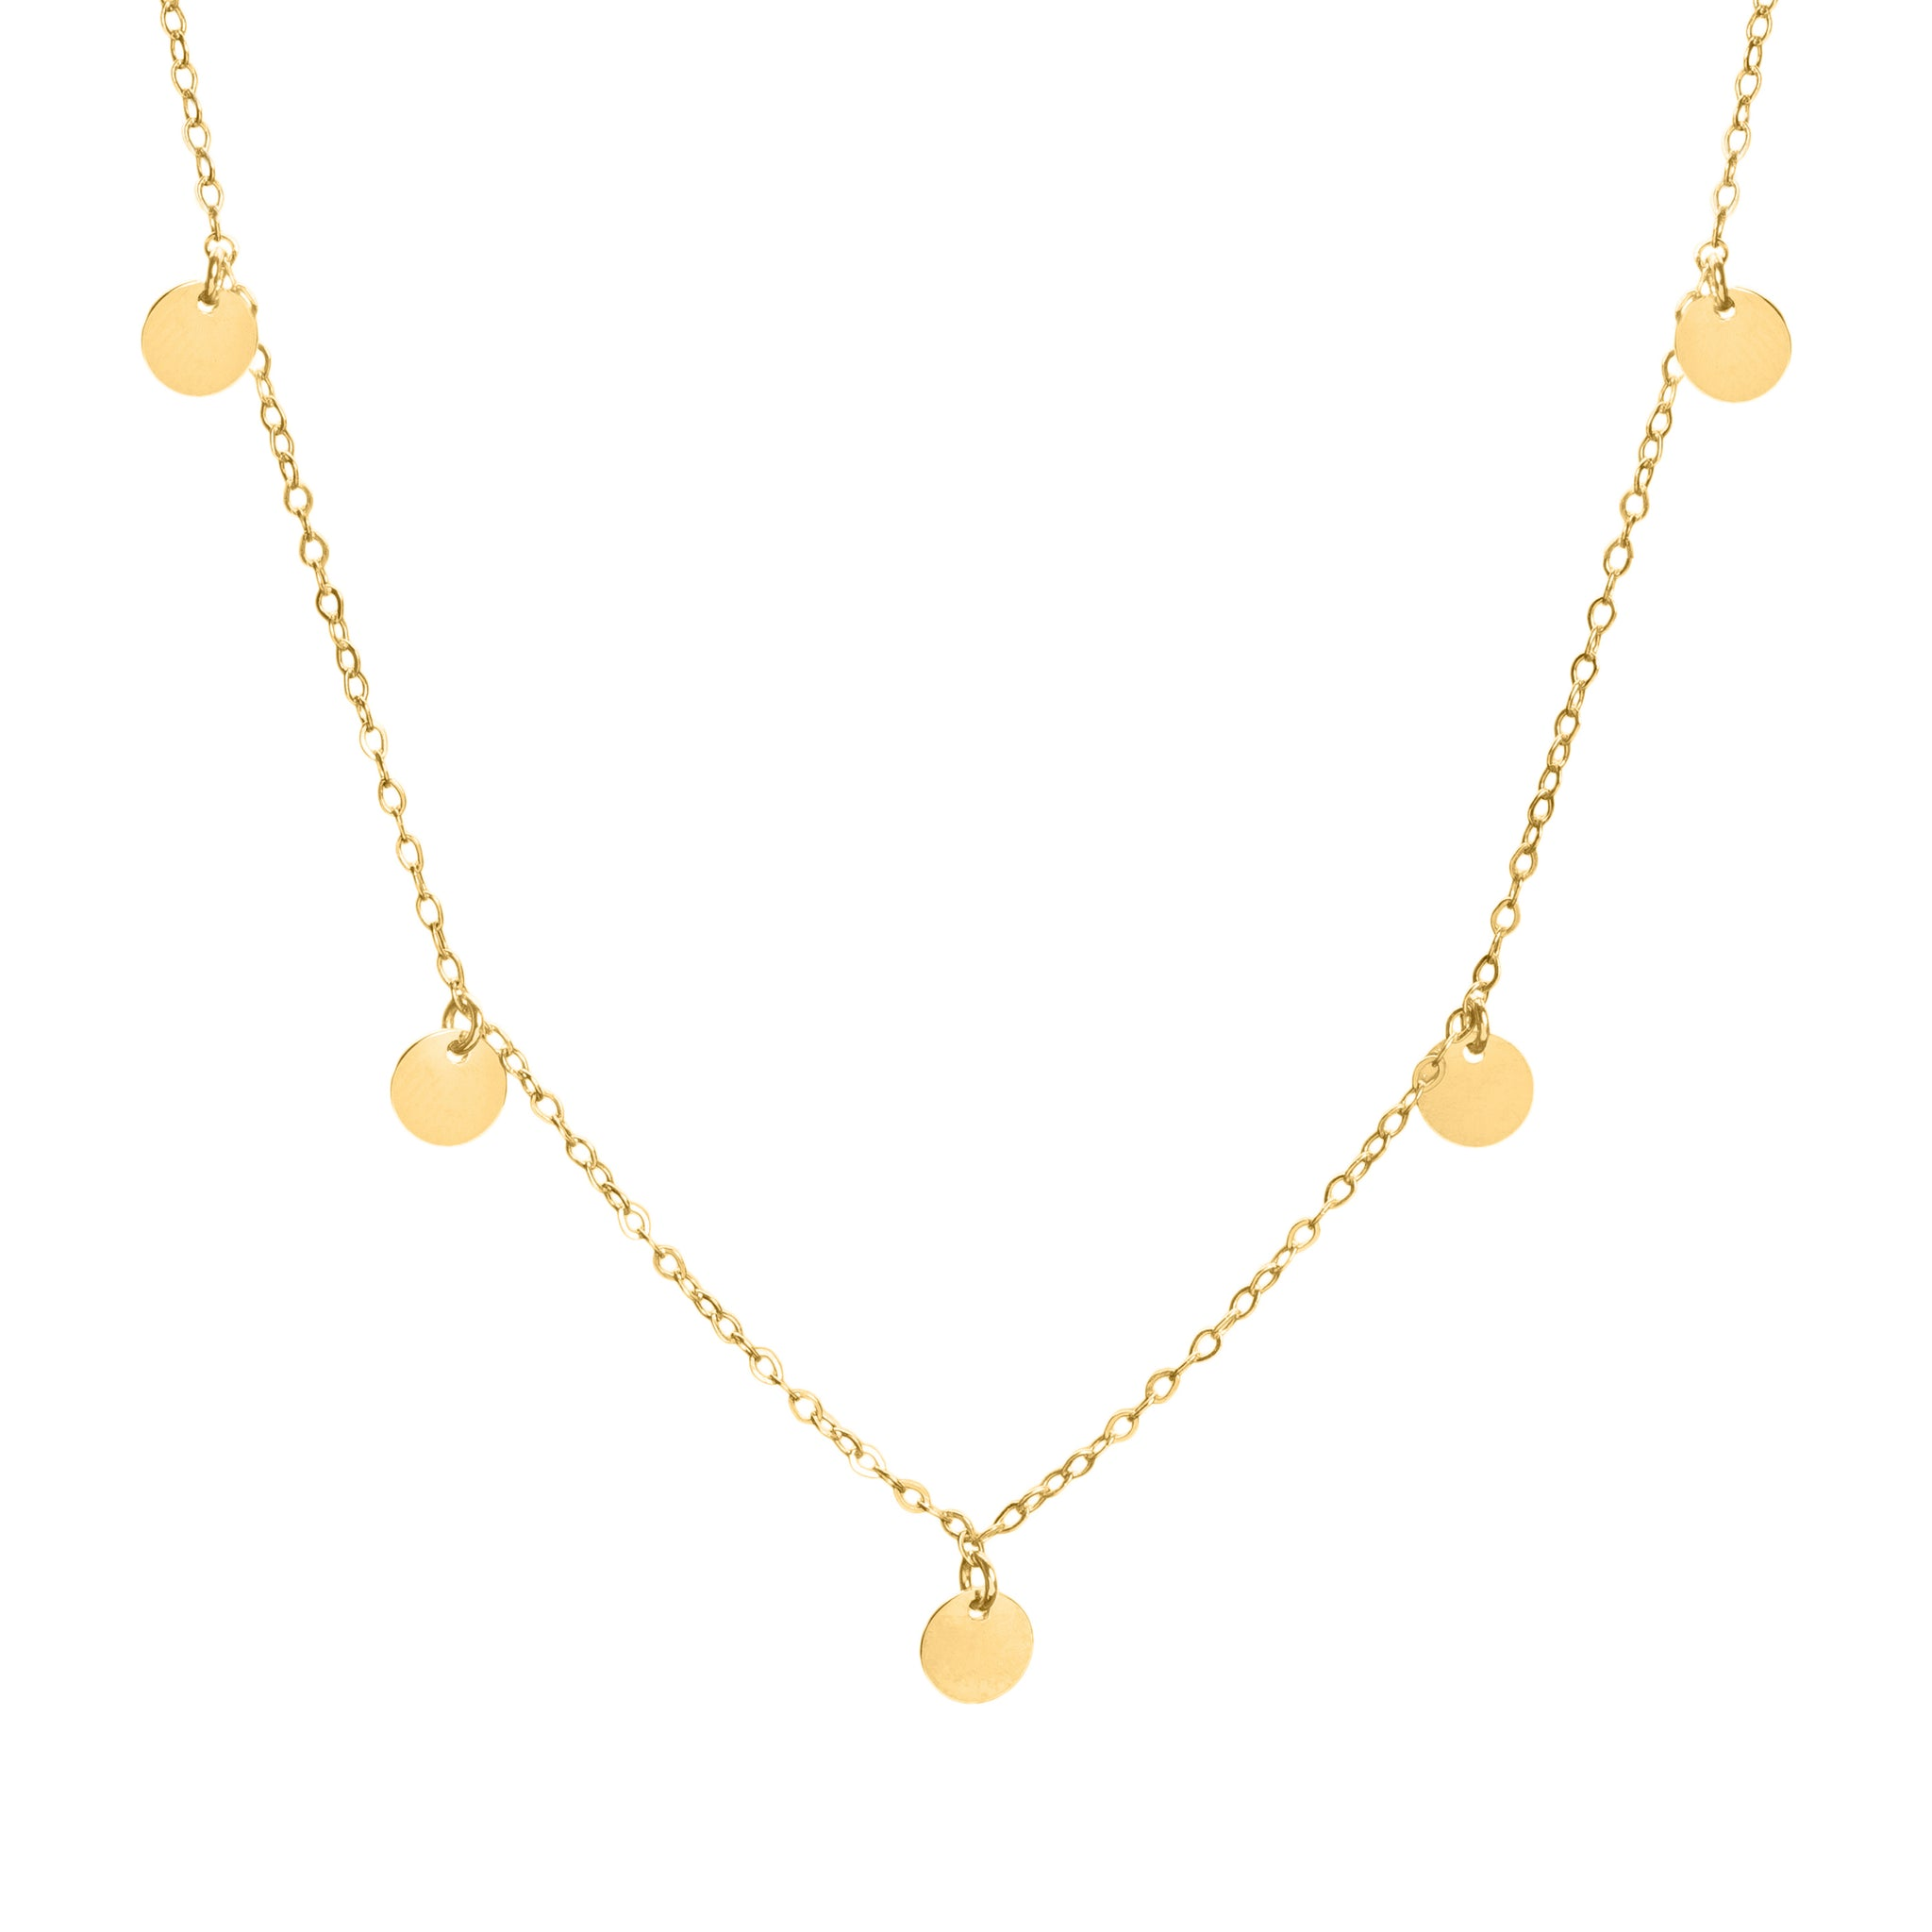 Giselle gold necklace